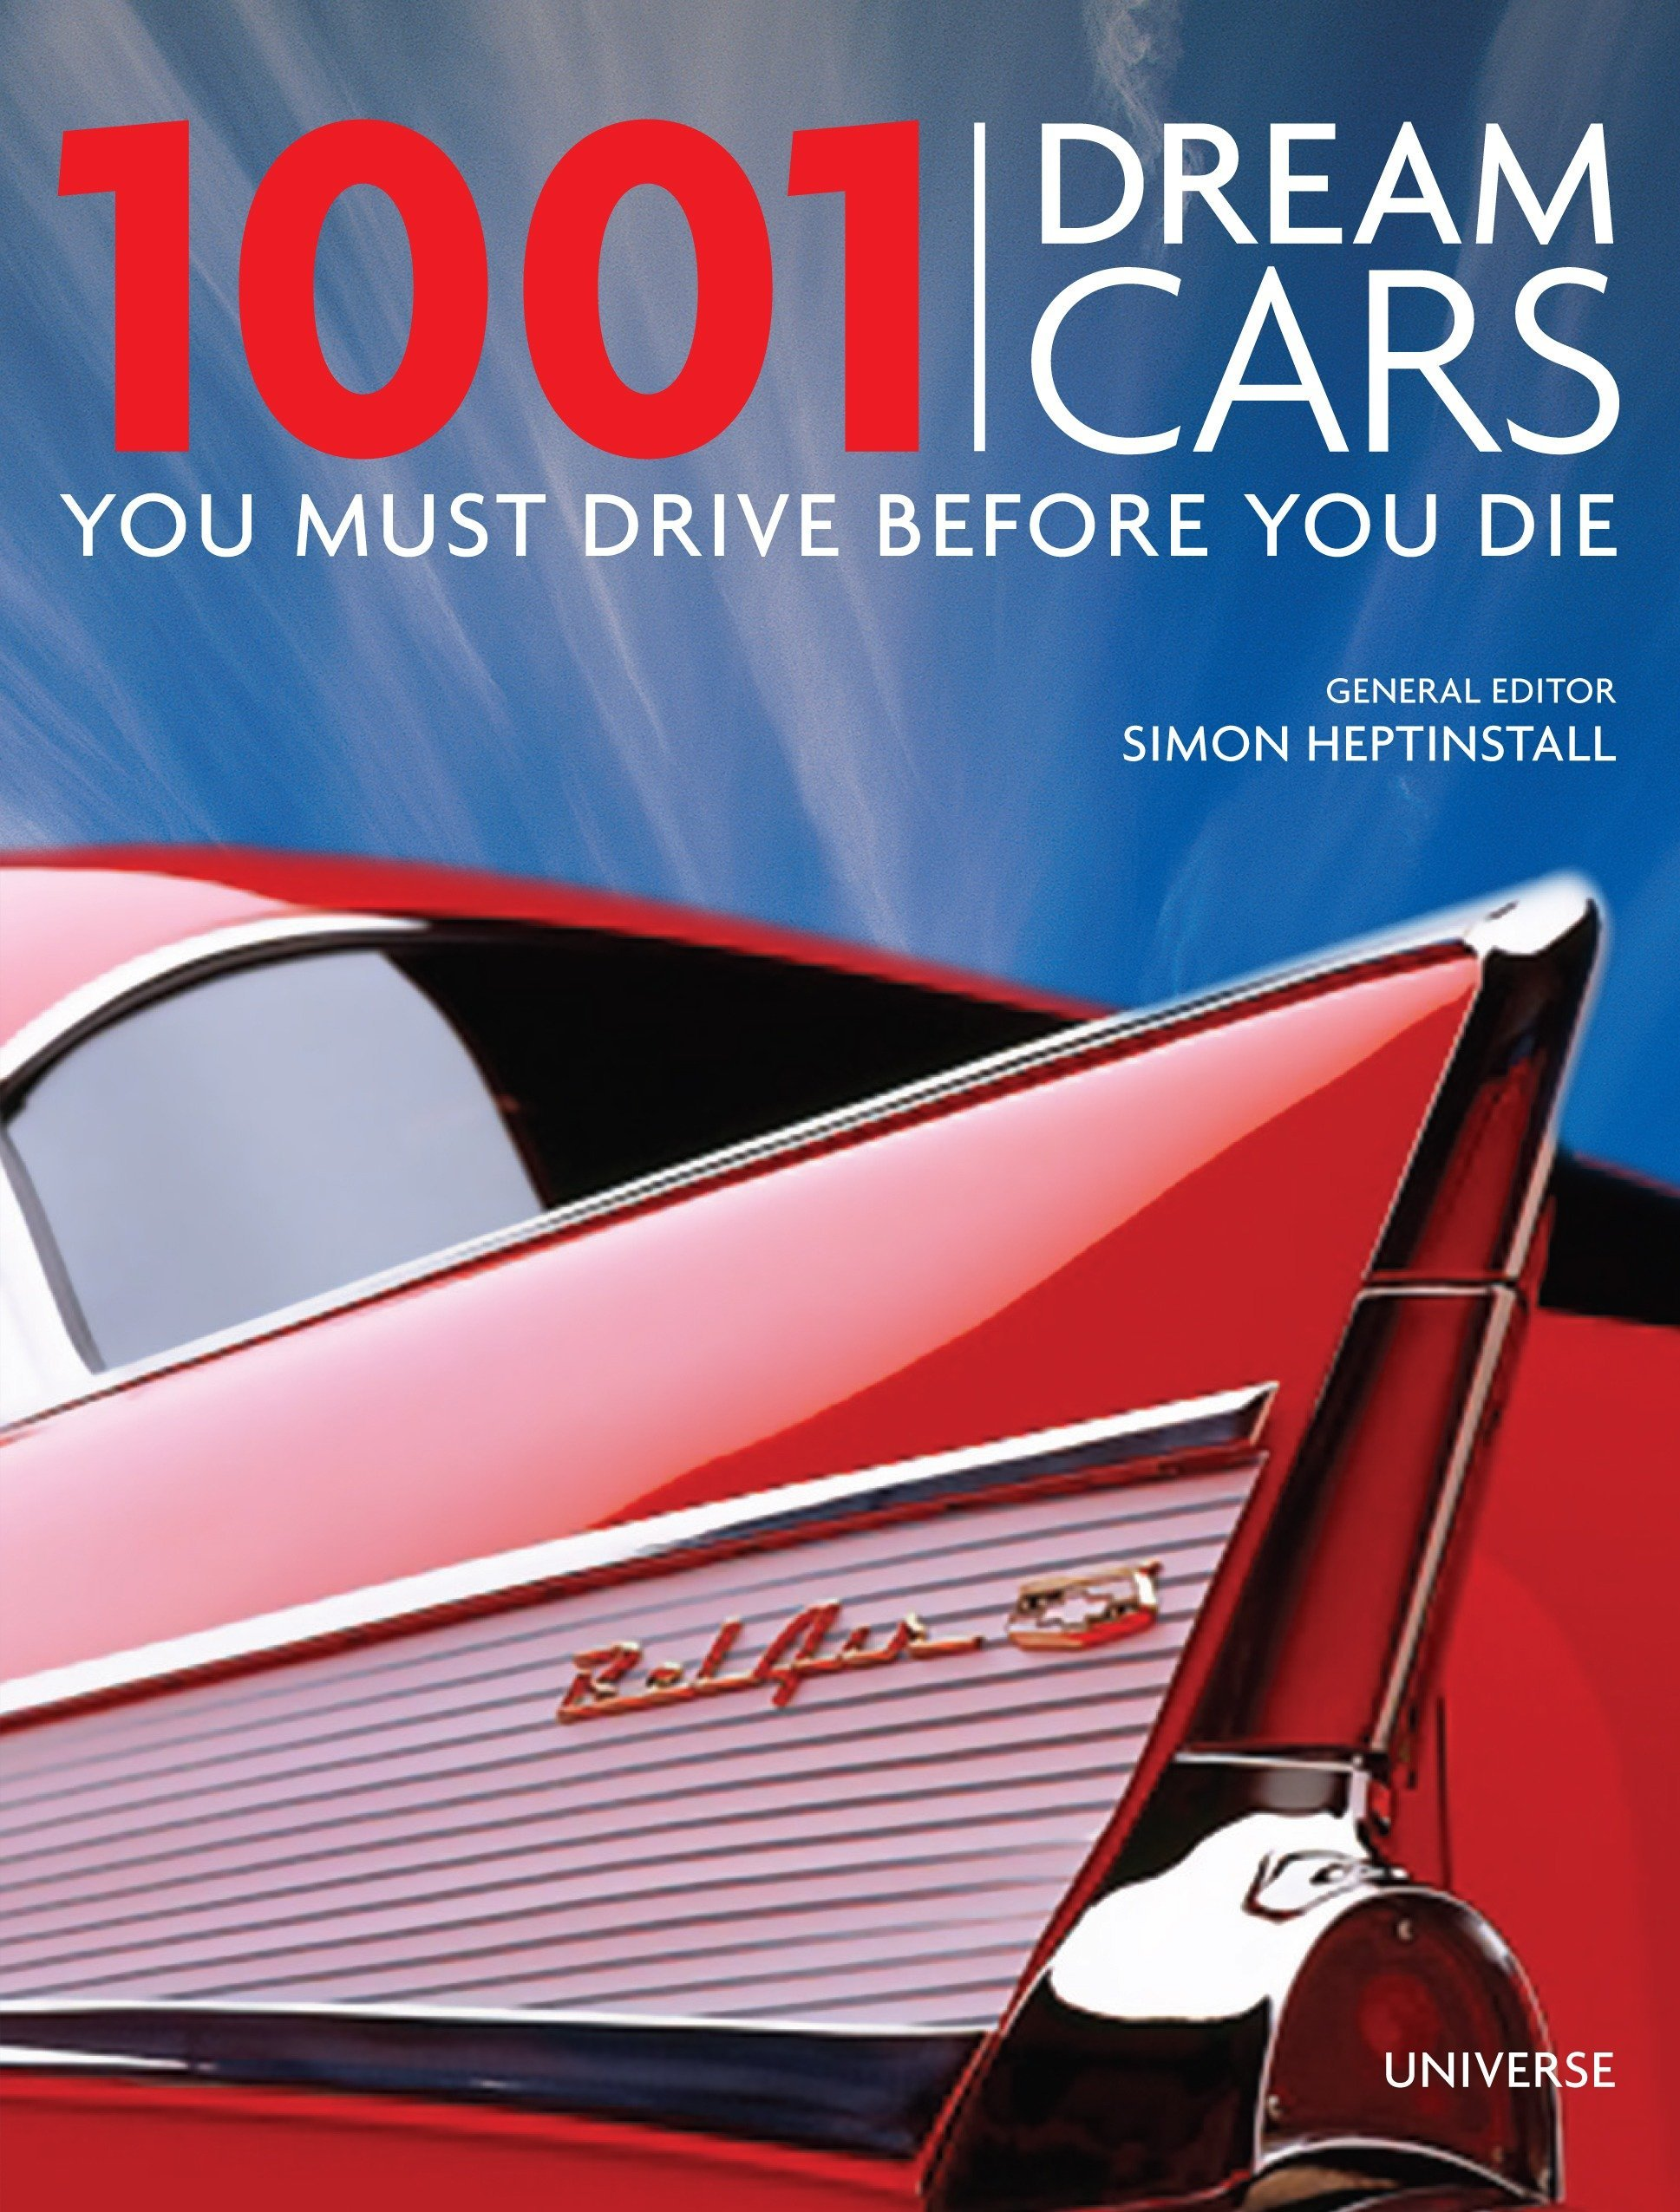 1001 Dream Cars You Must Drive Before You Die: Simon Heptinstall:  9780789324375: Amazon.com: Books